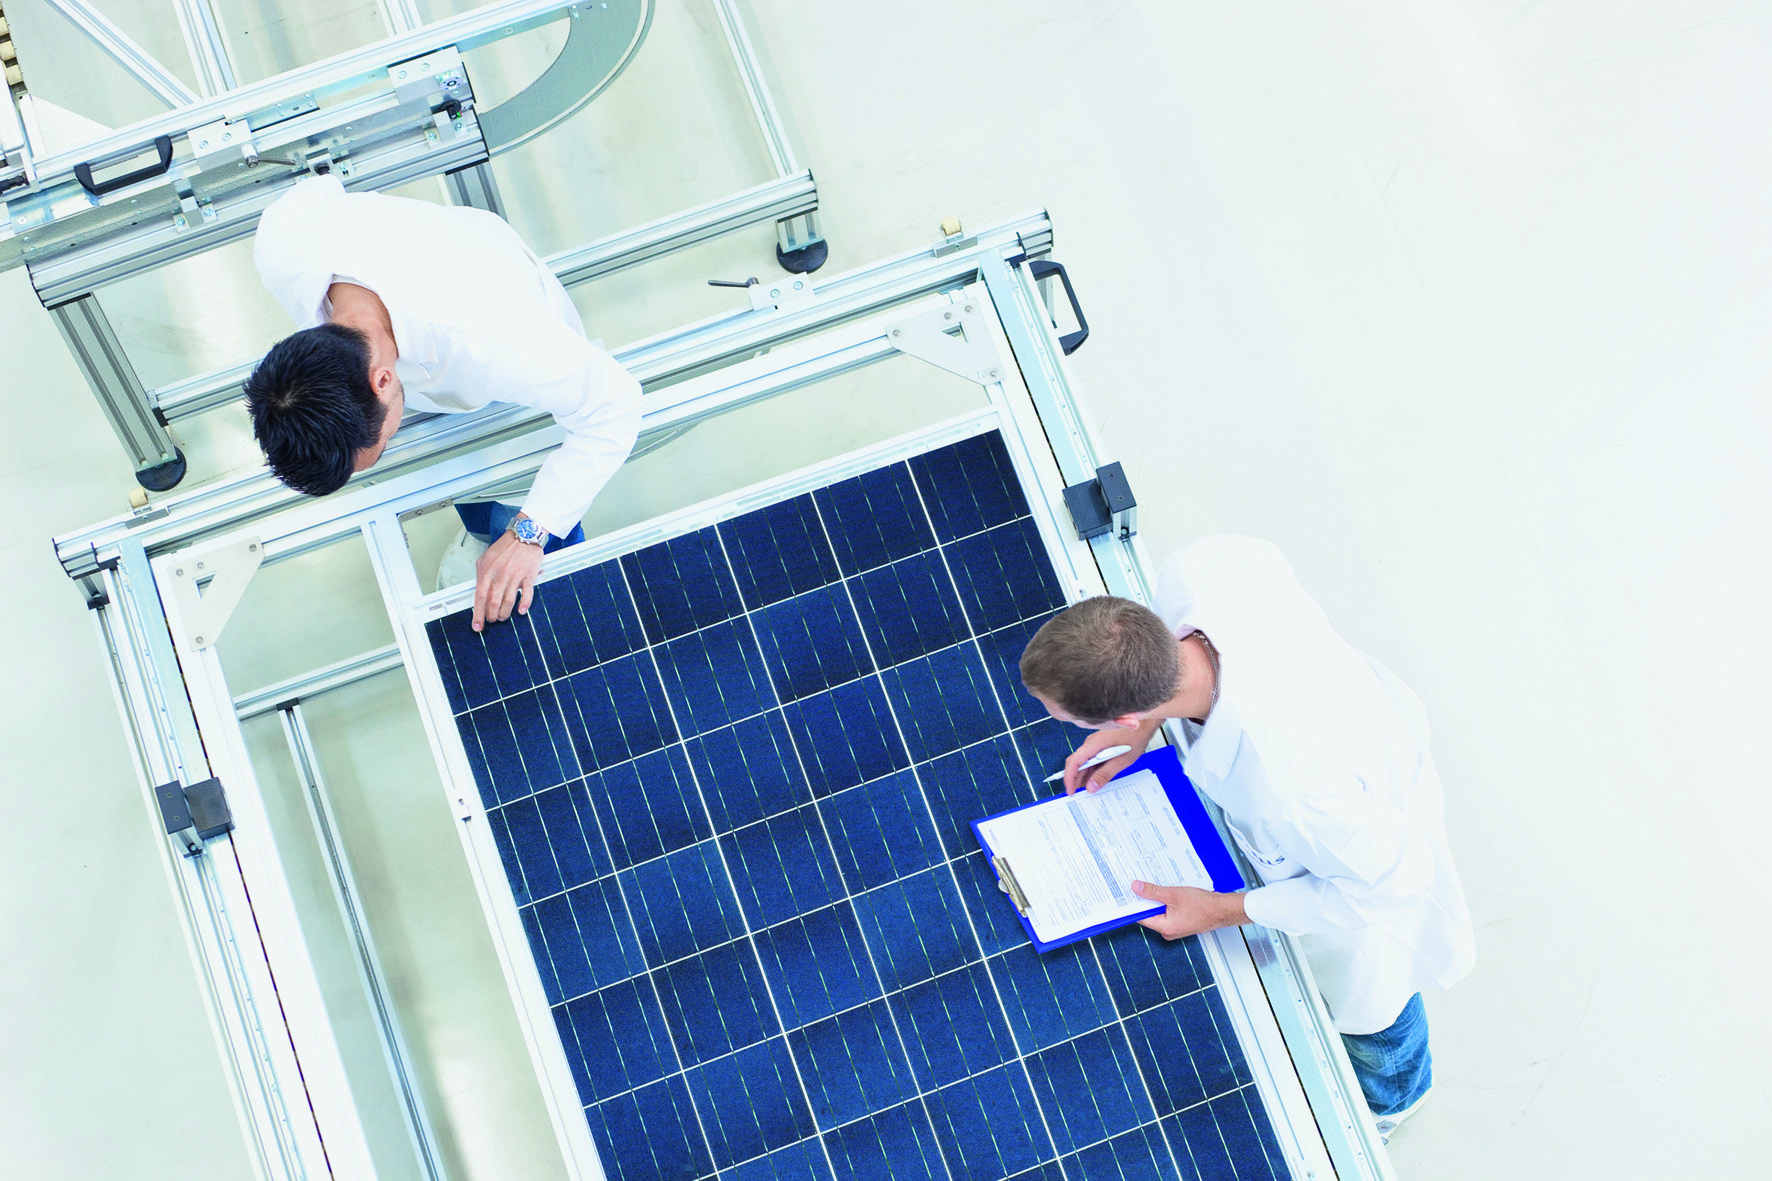 Hanwha Q CELLS said it had become eligible to participate in solar tenders in France after Certisolis had certified its PV modules had met low carbon footprint metrics and fulfilled all criteria for CRE3 and CRE4 tenders in the country. Image: Hanwha Q CELLS